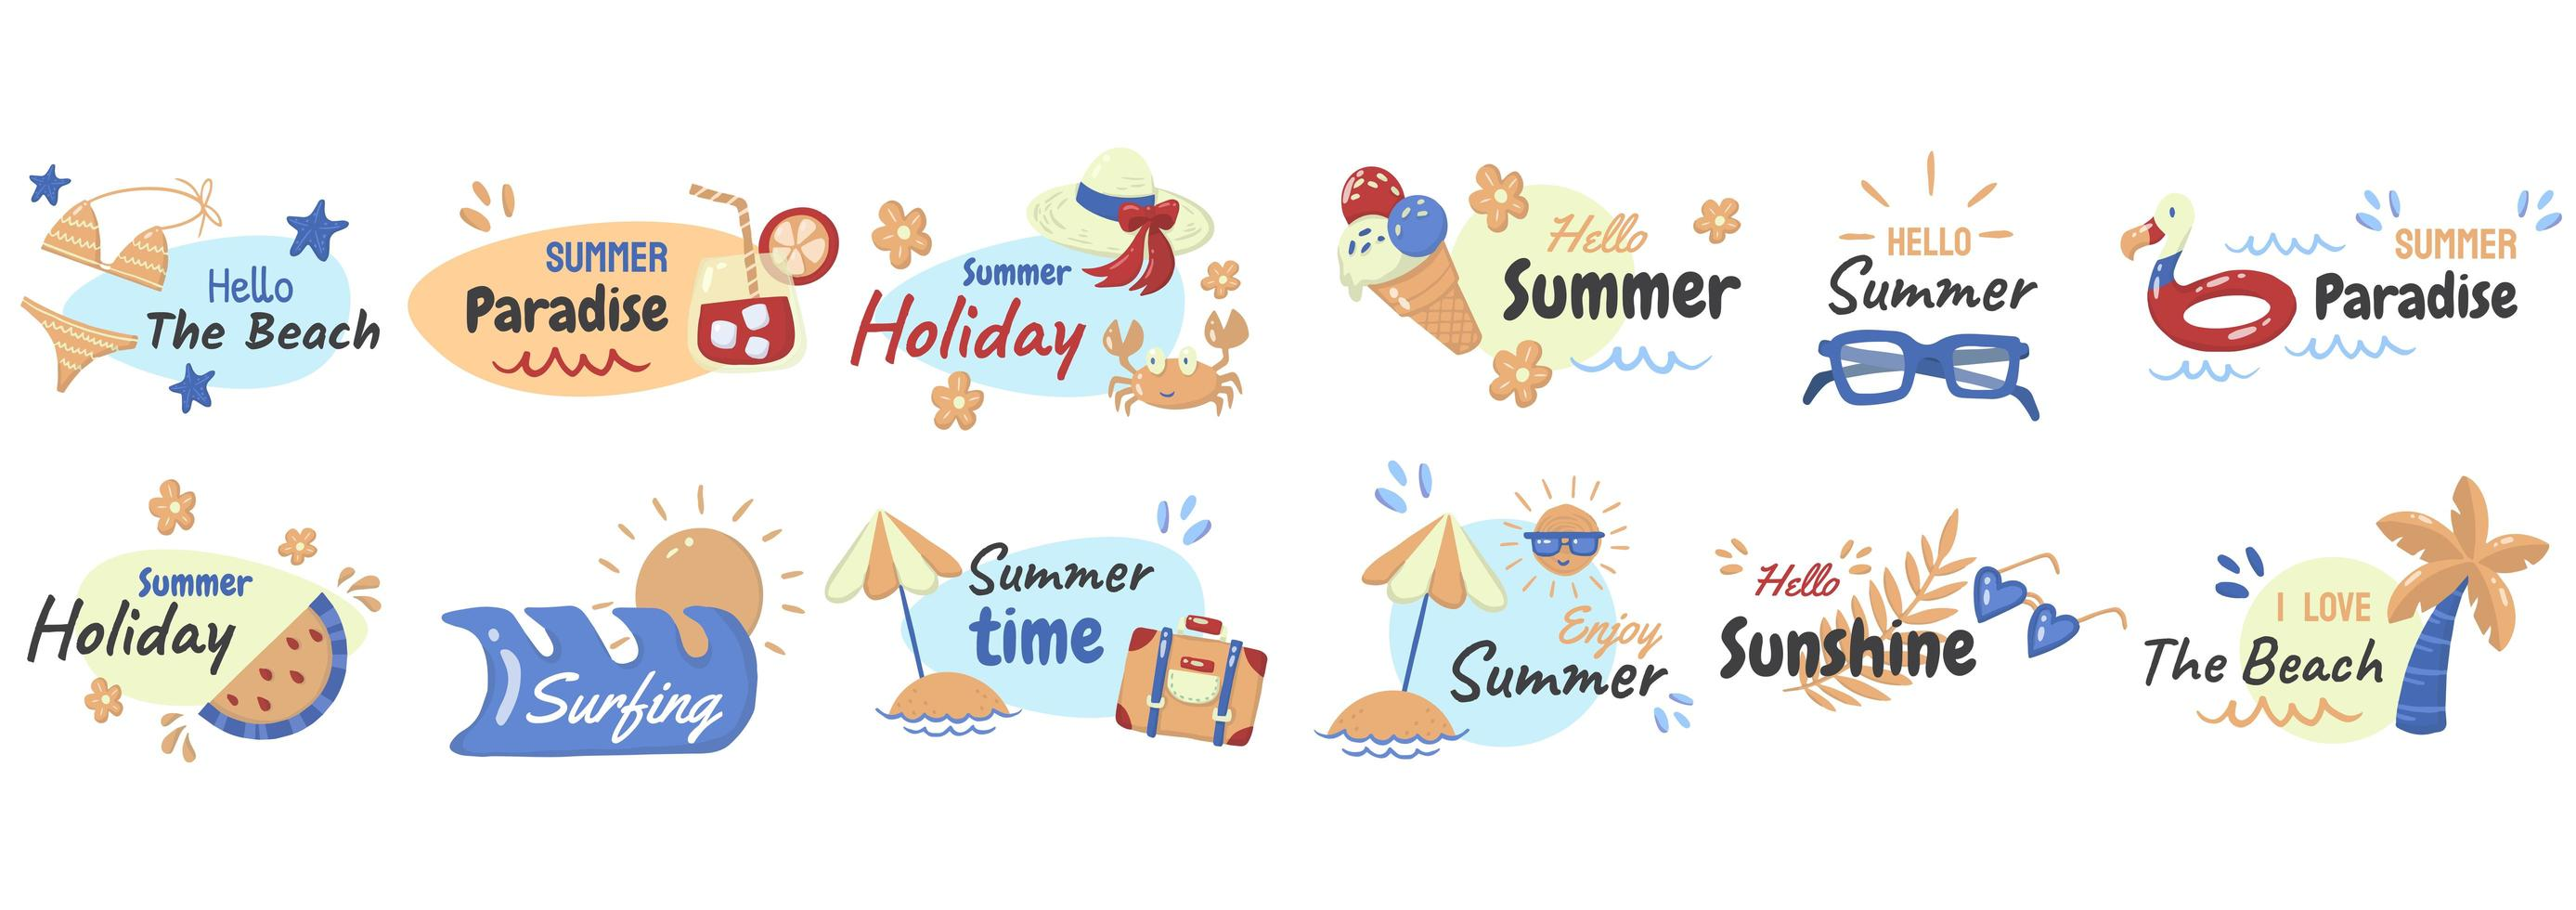 Cartoon style summer phrase and element set vector